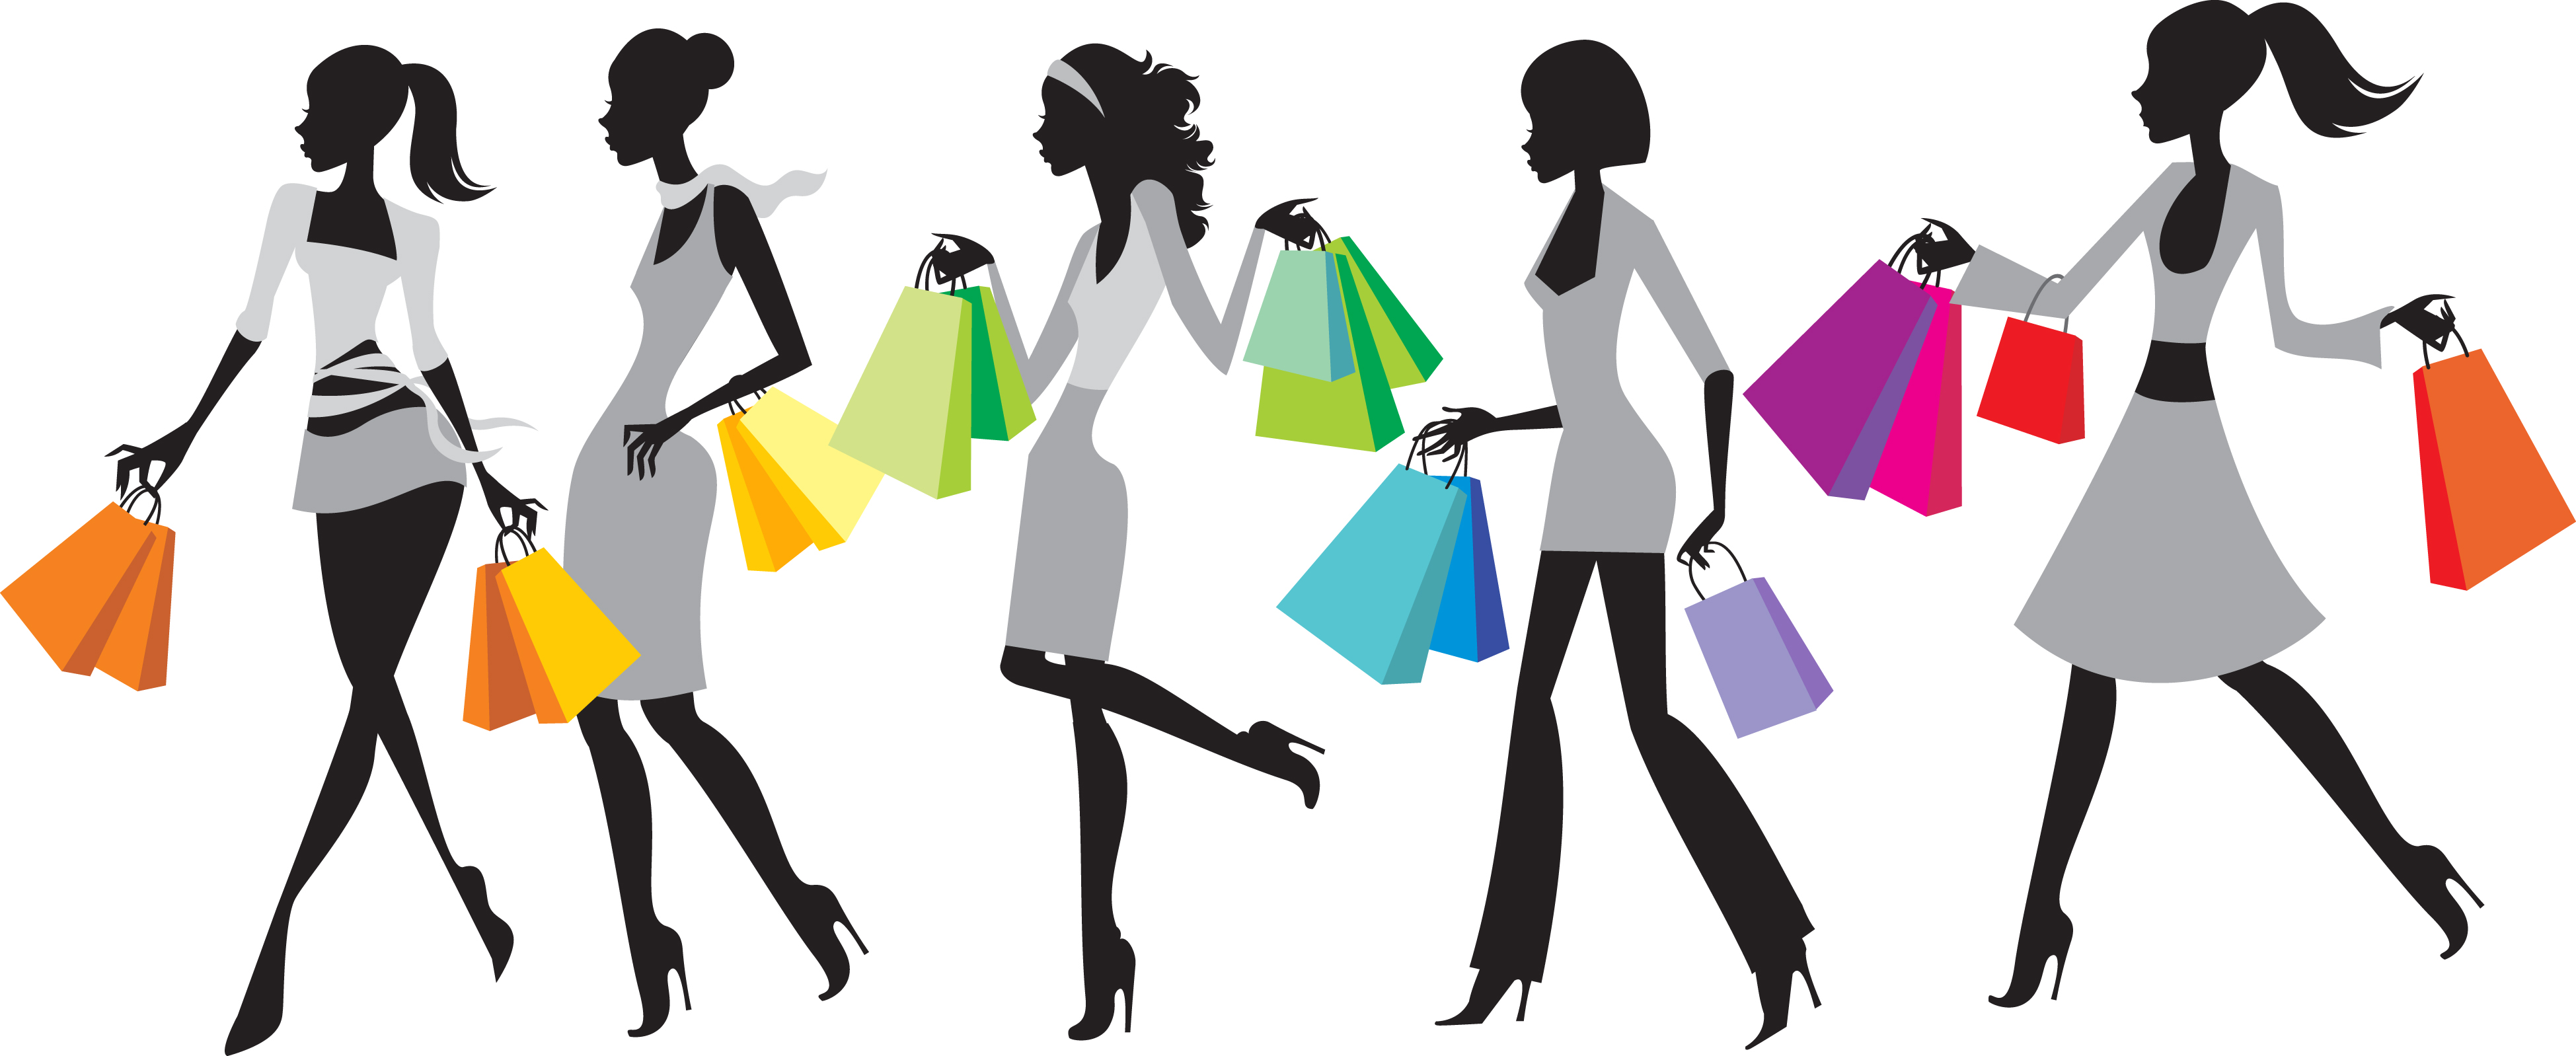 free-vector-fashion-shopping-01-vector_0